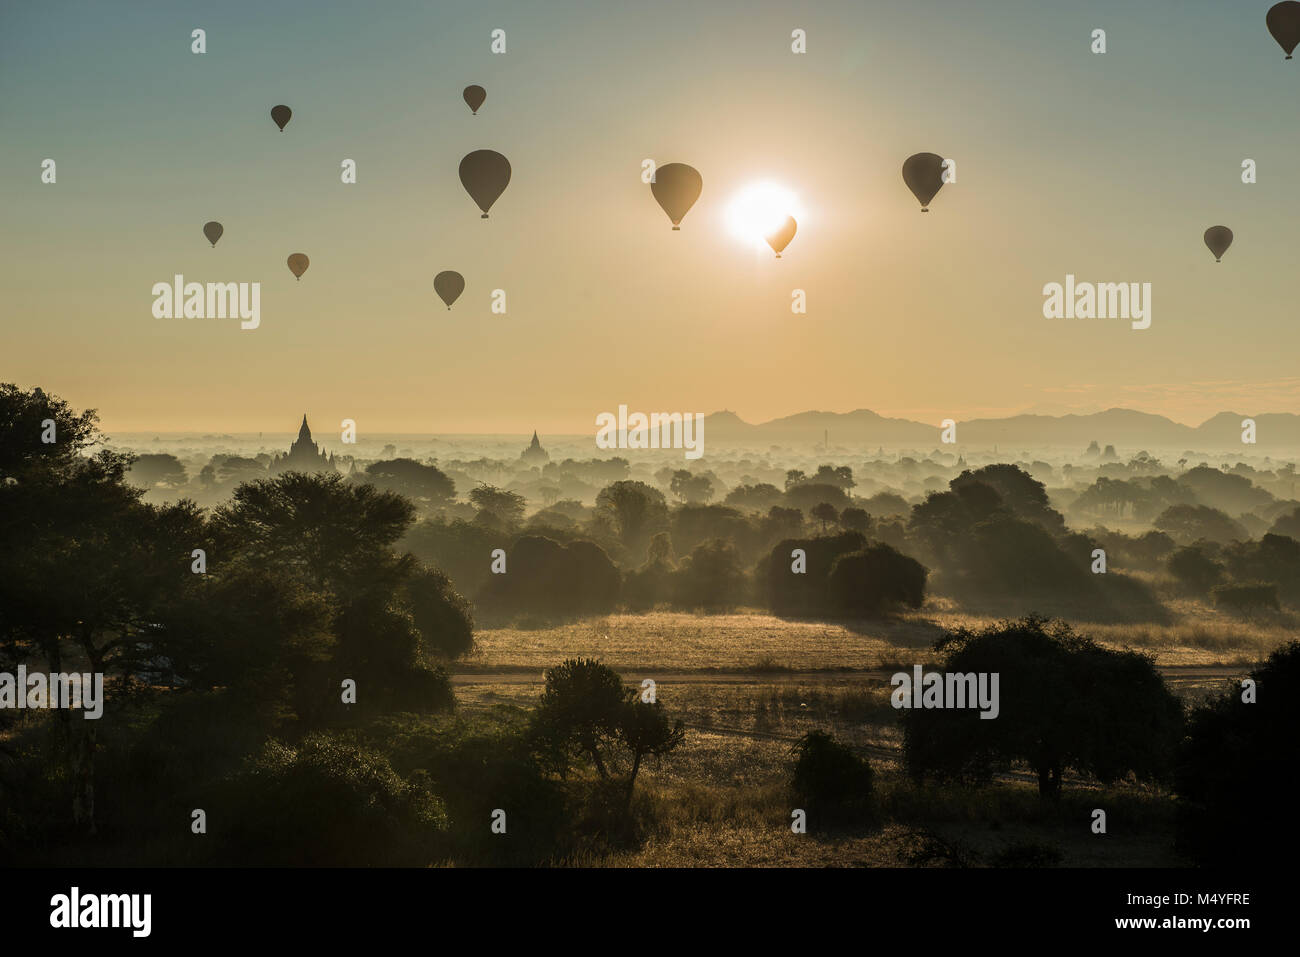 beautiful surise view of landscape in bagan myanmar wwith the clound mist and the golden temple - Stock Image